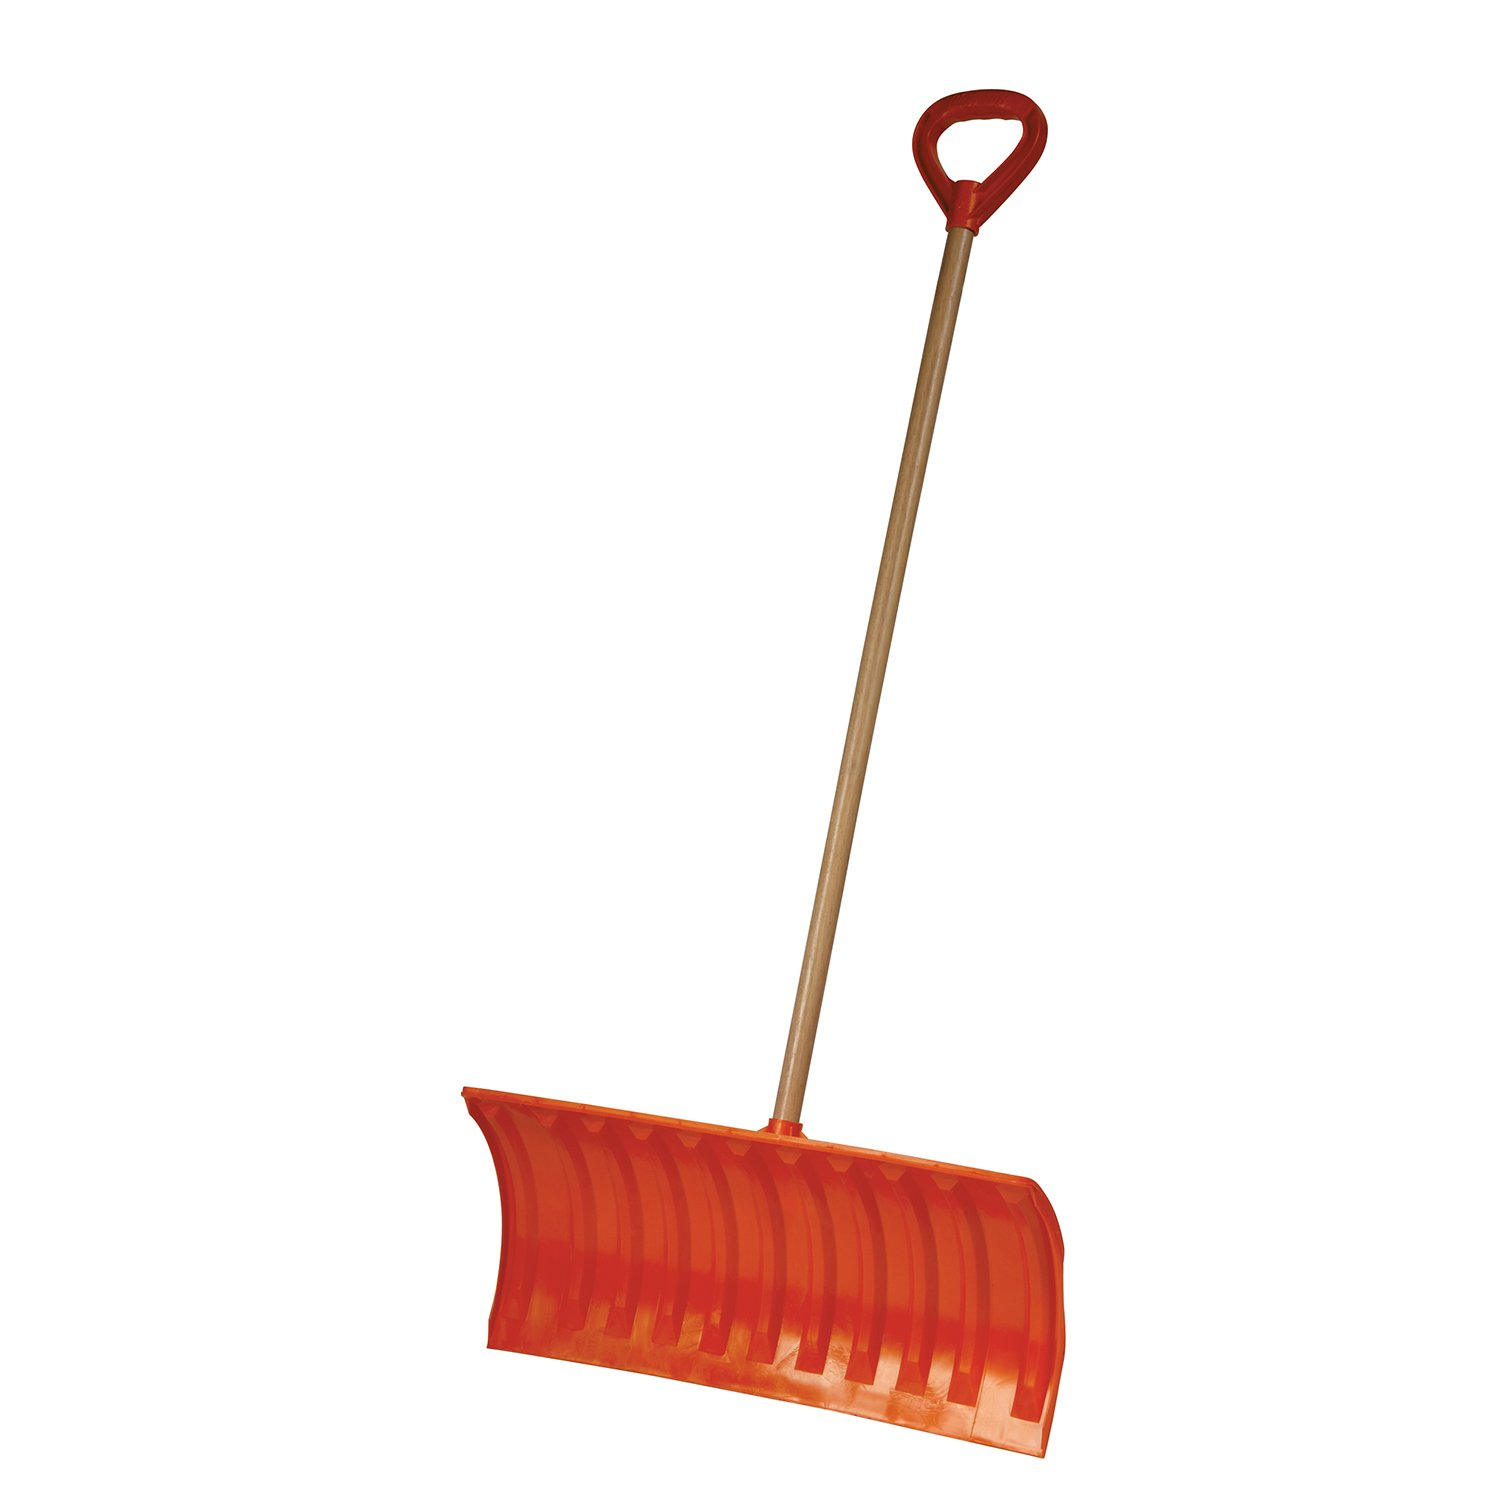 EMSCO Bigfoot Snow Roller Pusher Snow Shovel –– 25-Inch-Wide Blade – Made in USA